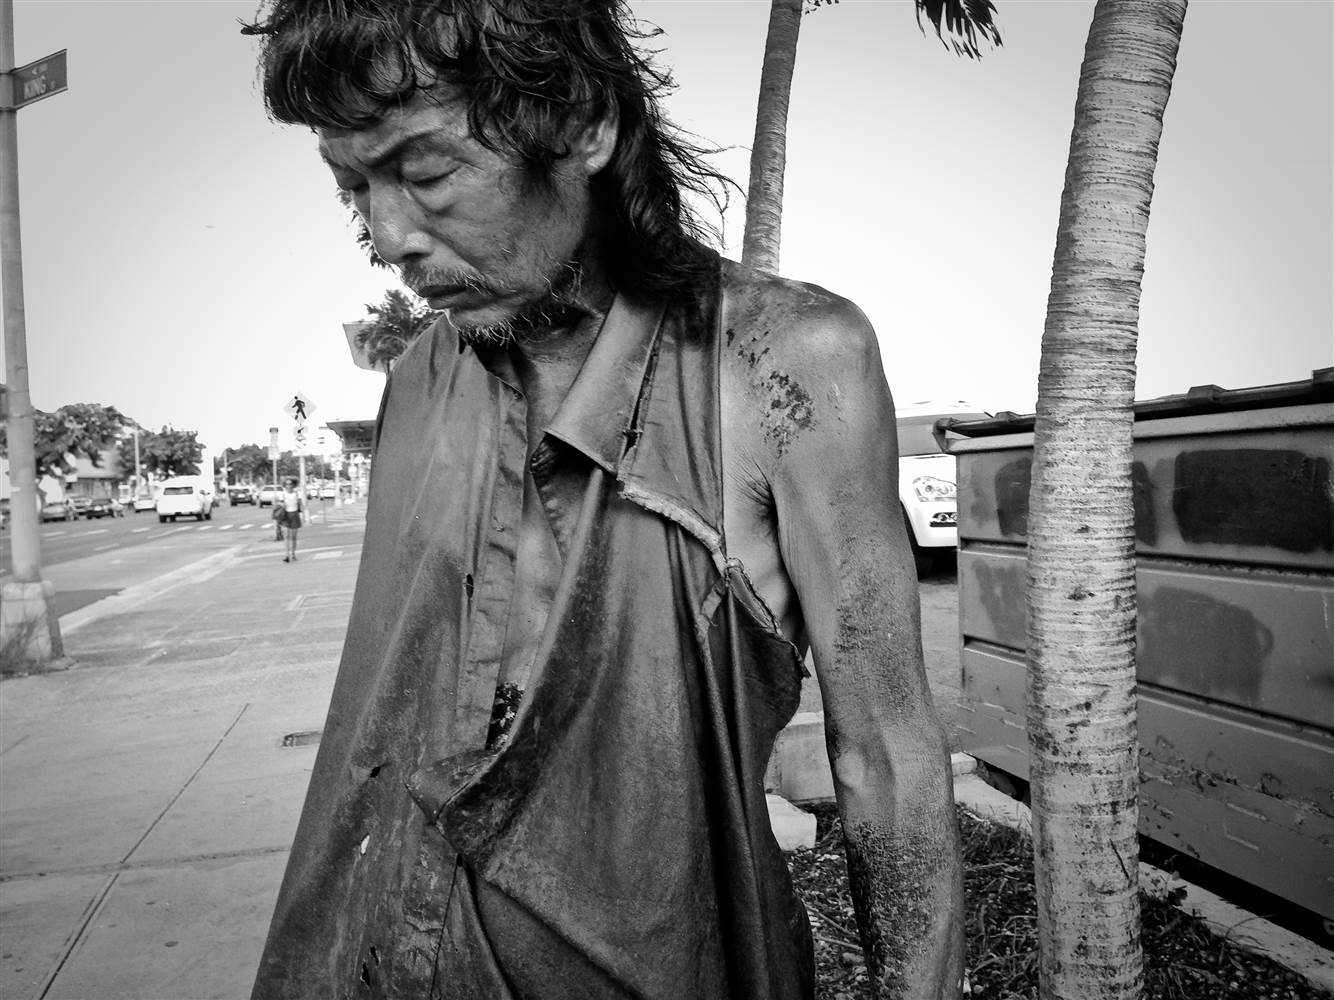 Woman Photographs The Homeless Only To Find Her Father Among Them   This is the story of Diana Kim, a young photographer born and bred in Honolulu, Hawaii. Formerly homeless, Diana has dedicated her love of photography to showcasing the hardships faced by the homeless in her project entitled  The Homeless Paradise .Though never did she think this project would force her to face a different hardship of her own – confronting her estranged father, alone on the streets, suffering from a severe mental illness.